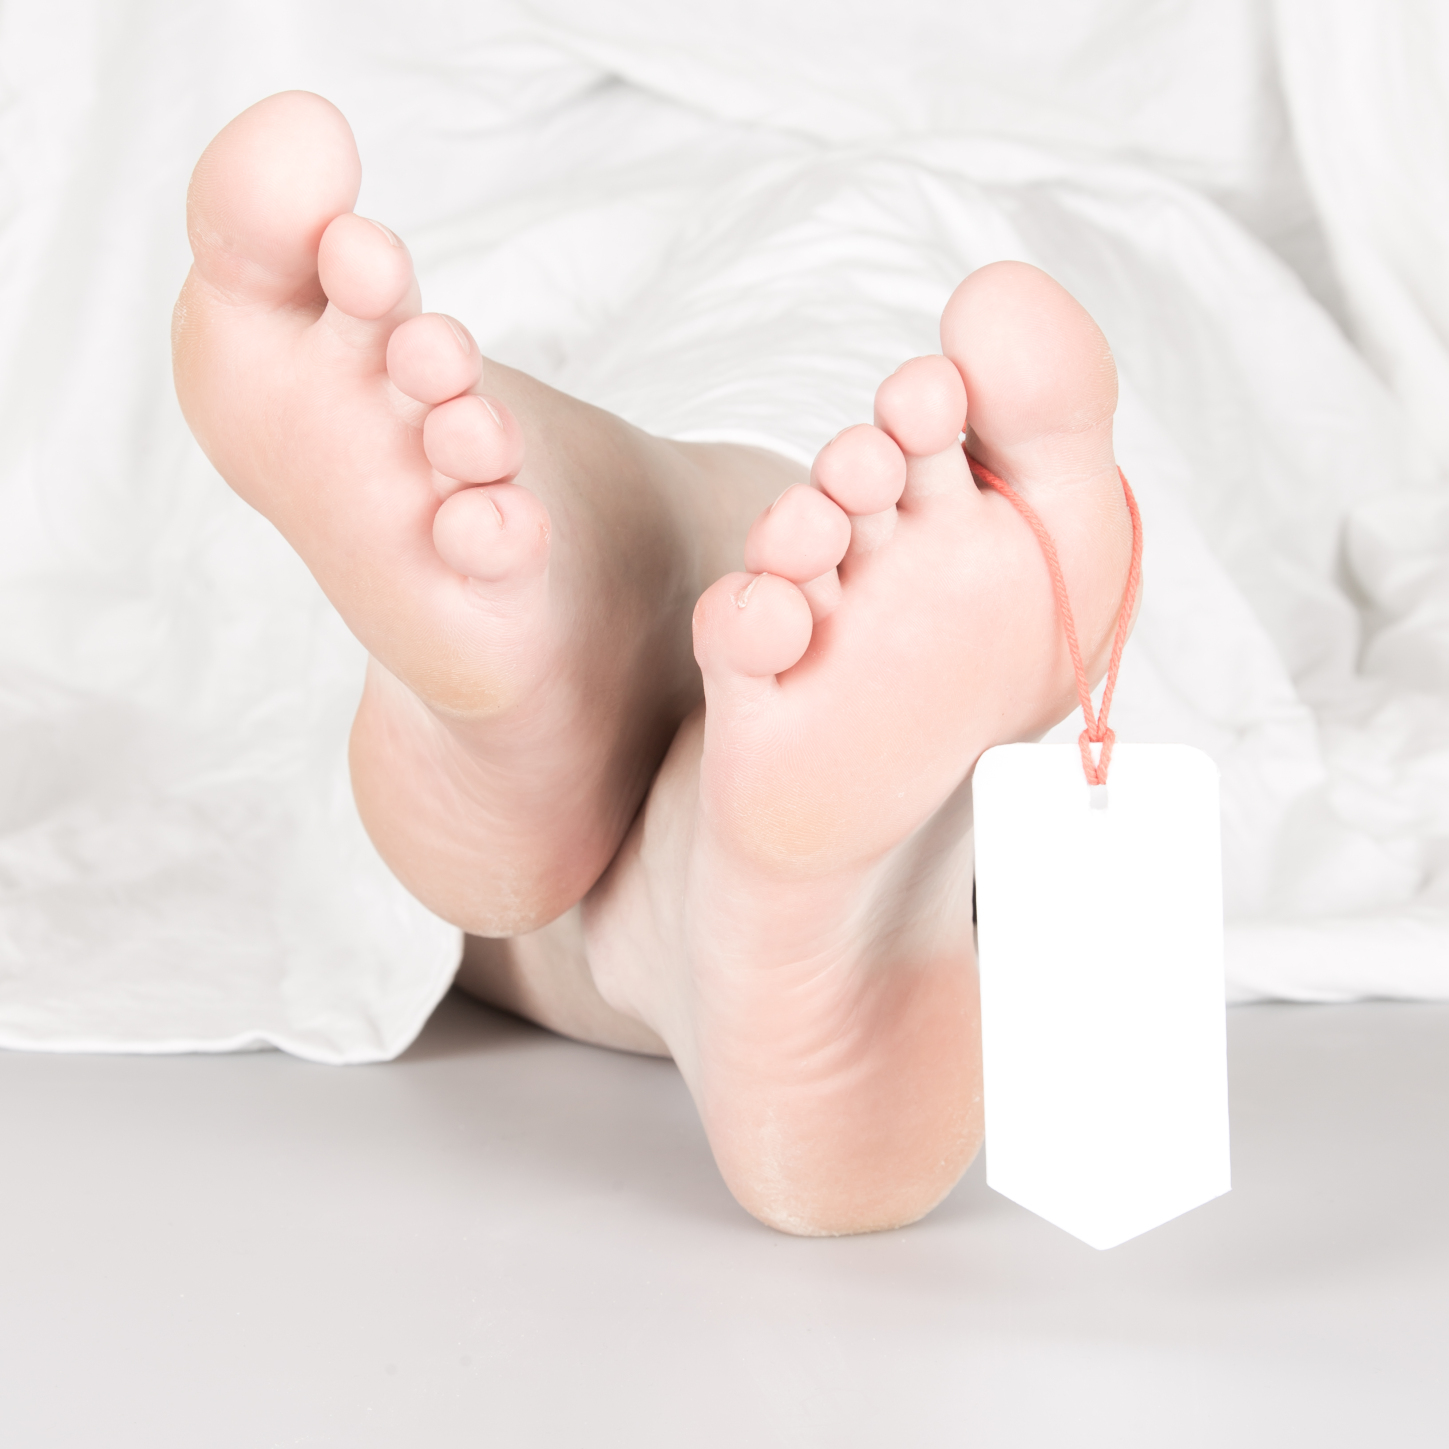 mommyjuiced.com_wp-content_uploads_2014_01_Kozzi-relaxed_dead_body_with_toe_tag-1449x1449